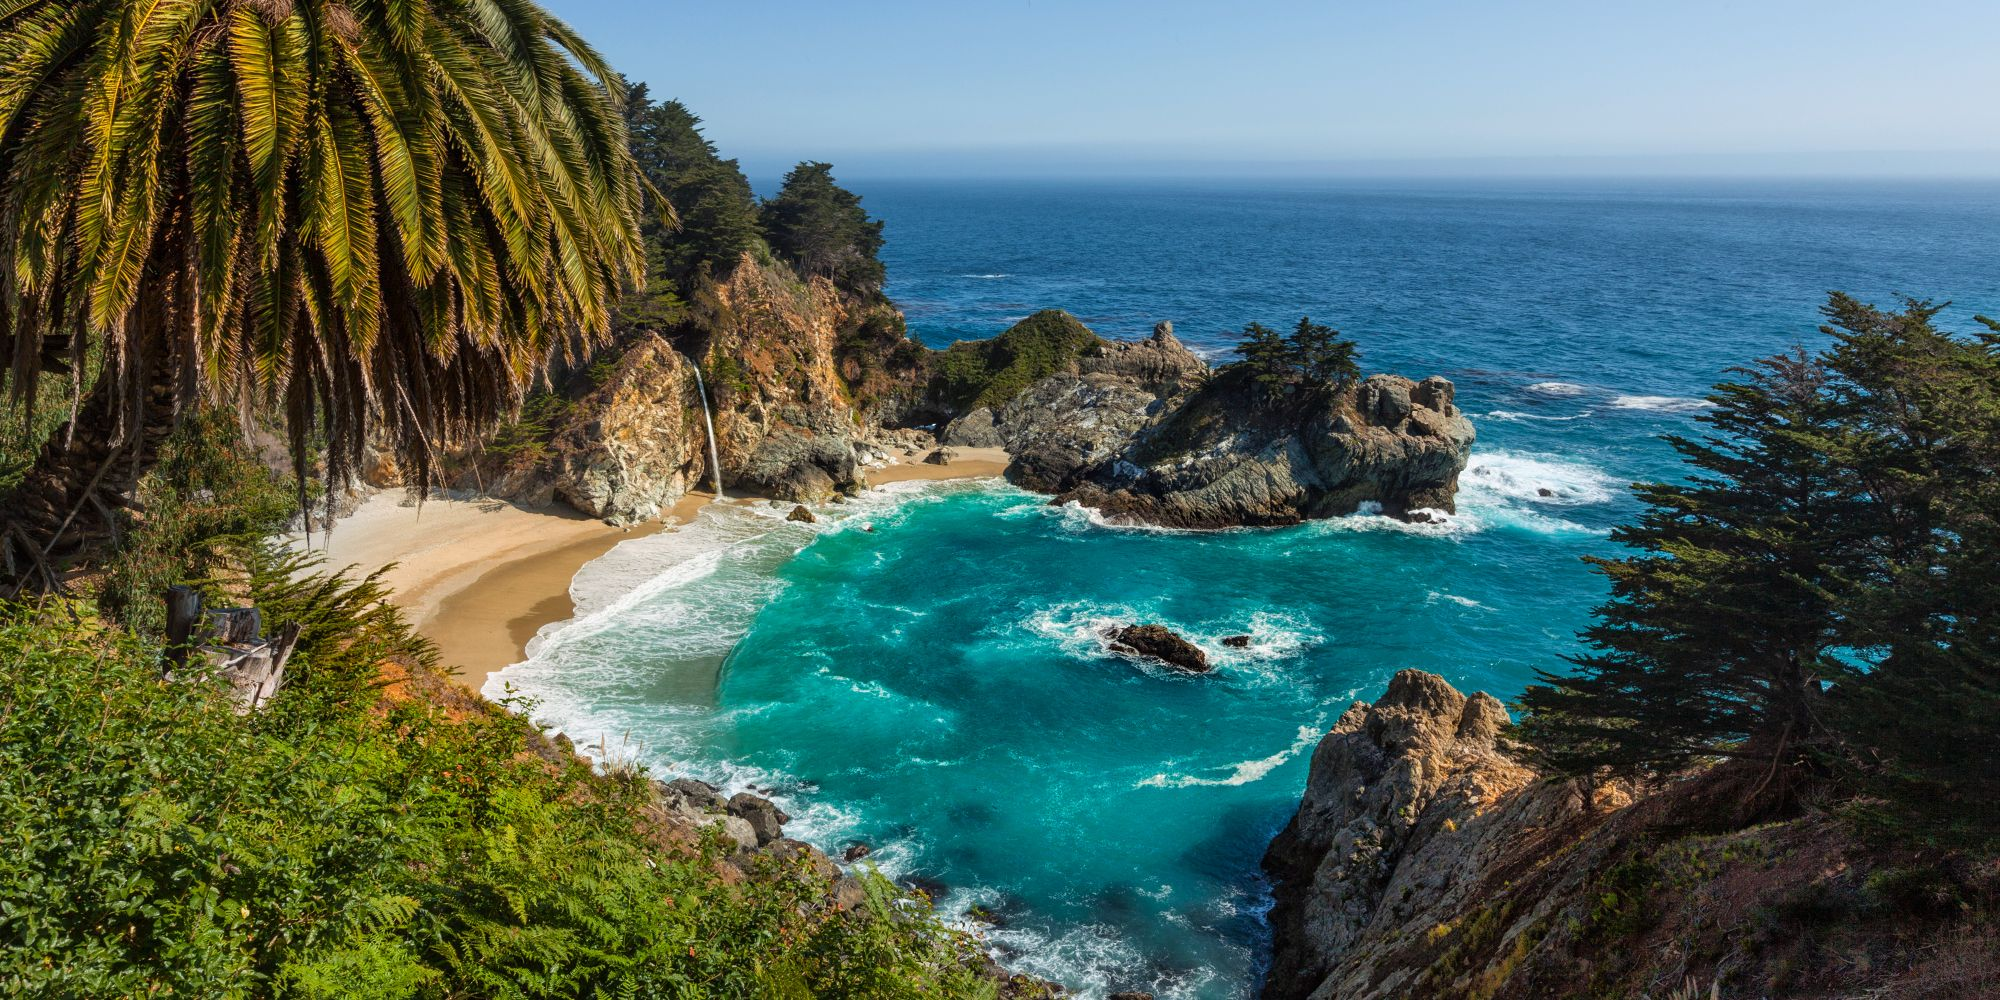 The Best Places to Visit in California for Major West Coast Wanderlust